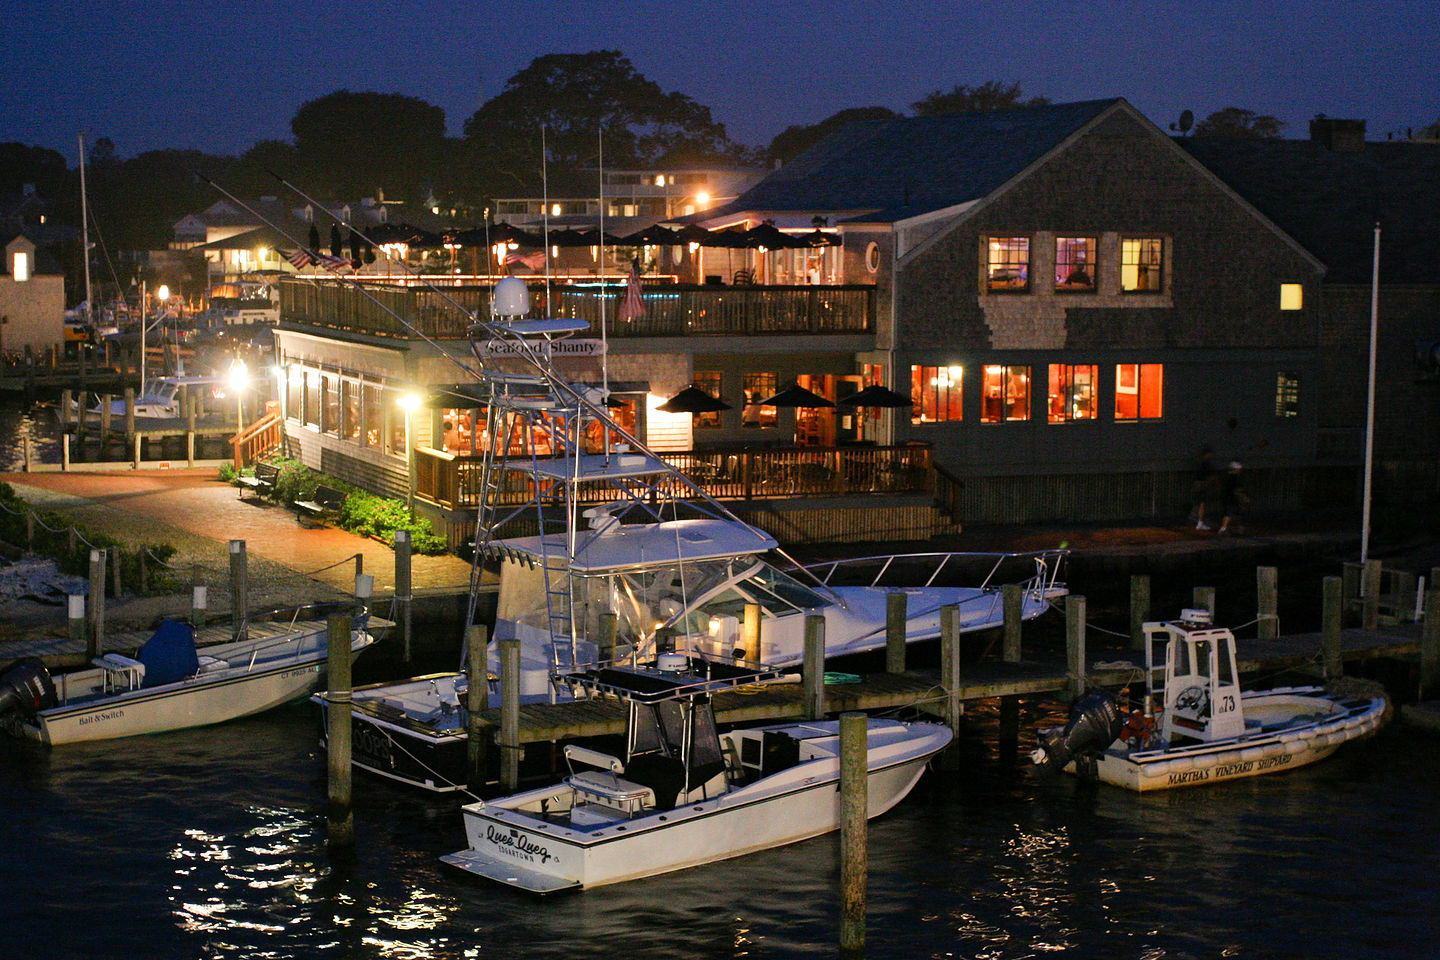 Night View from Memorial Wharf of Seafood Shanty